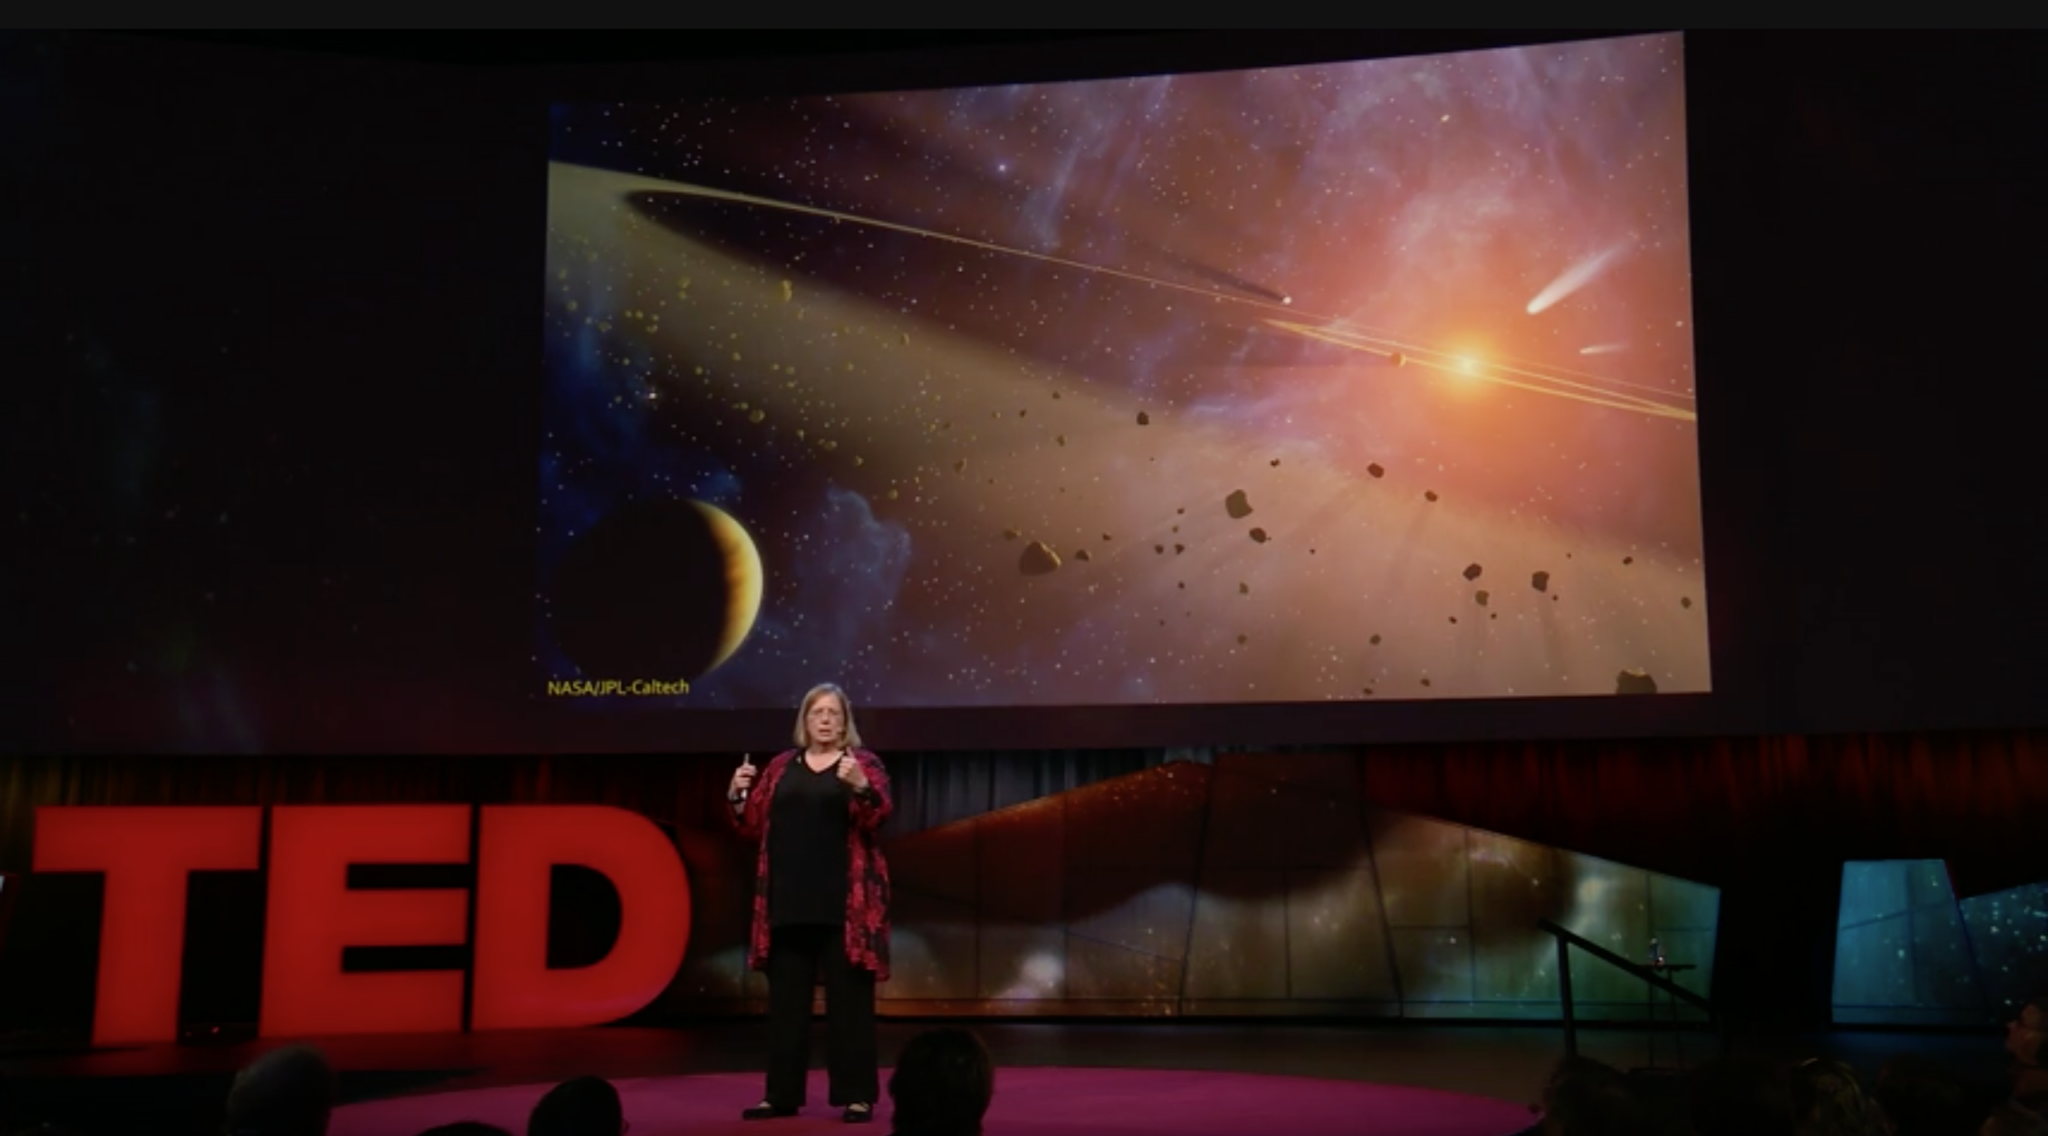 "In October 2017, astrobiologist Karen J. Meech got the call every astronomer waits for: NASA had spotted the very first visitor from another star system. The interstellar comet -- a half-mile-long object eventually named `Oumuamua, from the Hawaiian for ""scout"" or ""messenger"" -- raised intriguing questions: Was it a chunk of rocky debris from a new star system, shredded material from a supernova explosion, evidence of alien technology or something else altogether? In this riveting talk, Meech tells the story of how her team raced against the clock to find answers about this unexpected gift from afar. This talk was presented at an official TED conference"